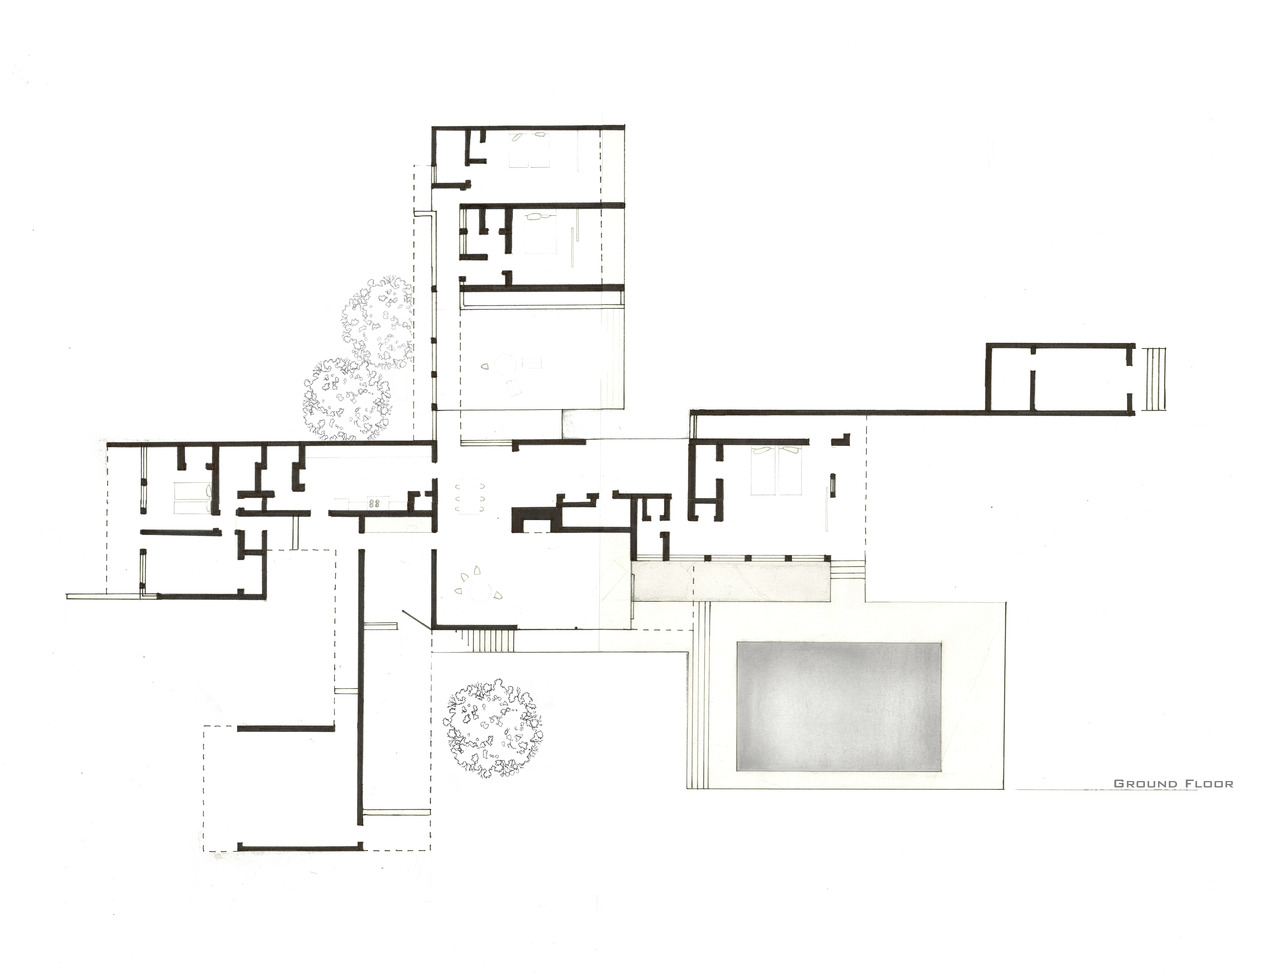 1000 images about plans on pinterest richard neutra for House floor plans zambia